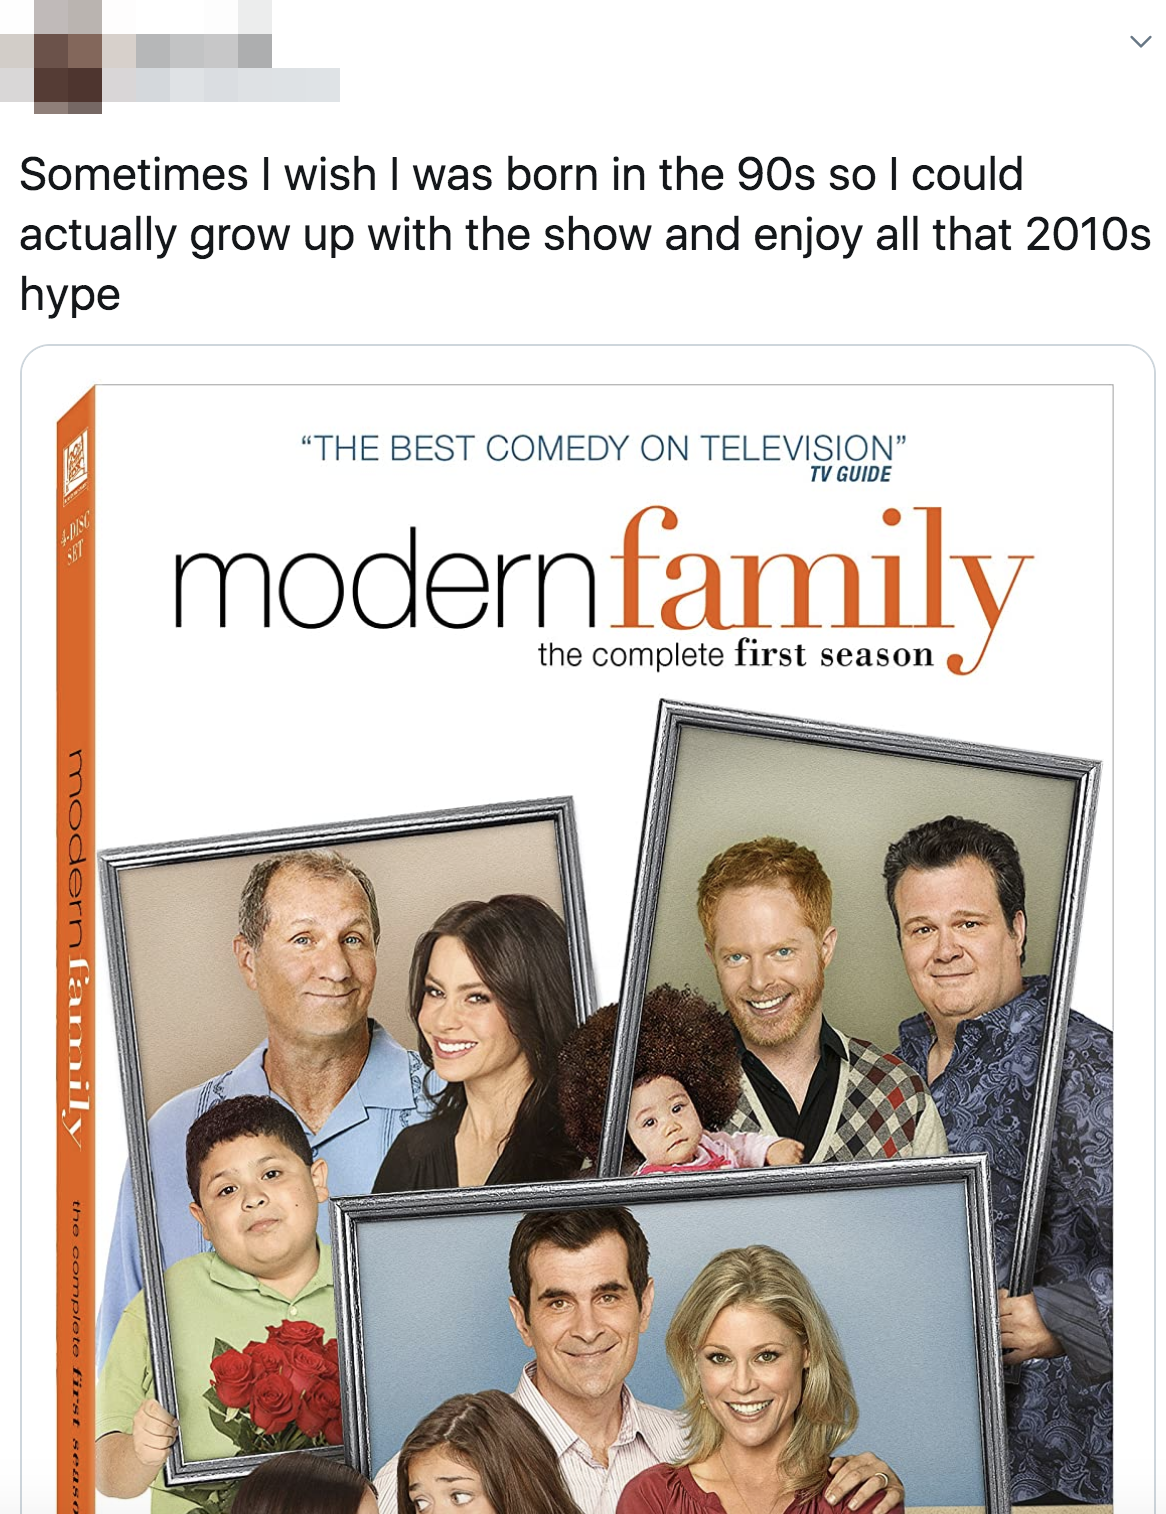 tweet reading sometimes i wish i was born in the 90s so i could actually grow up with the show and the show is modern family